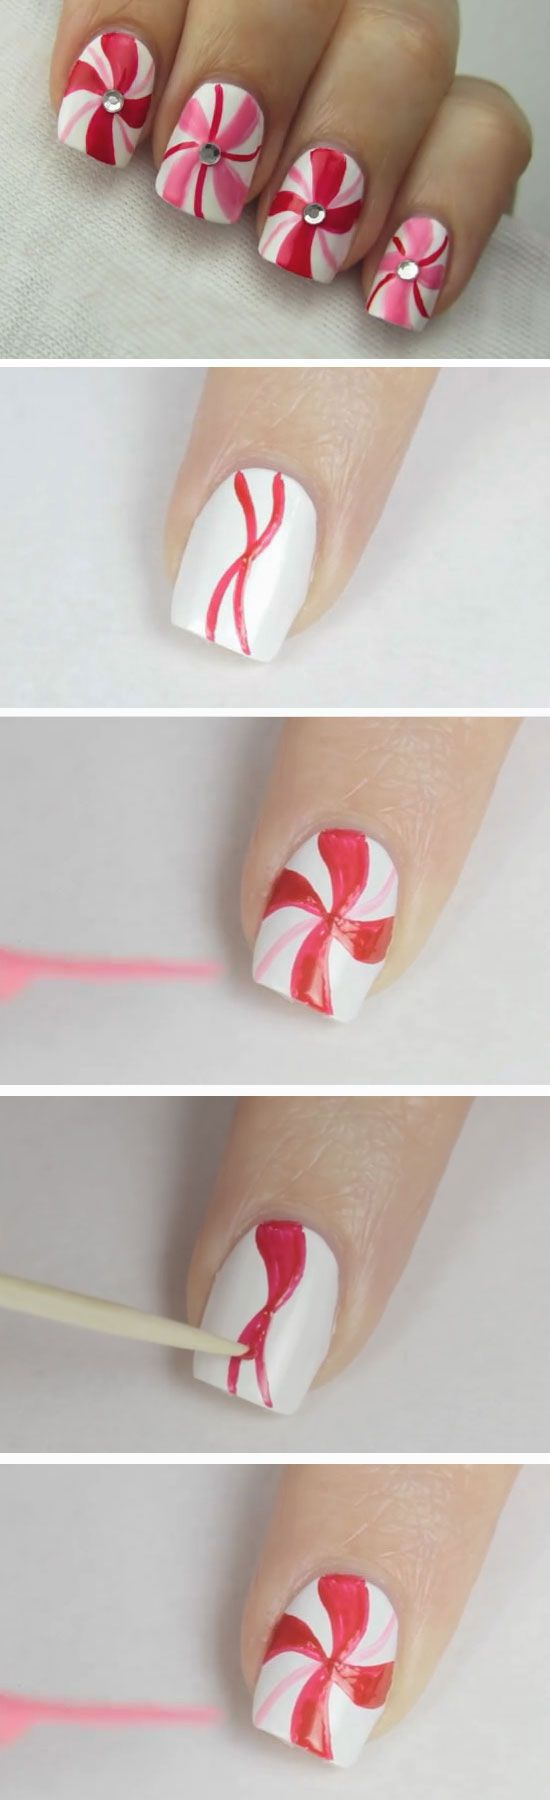 287 best nails images on Pinterest | Fingernail designs, Nail design ...